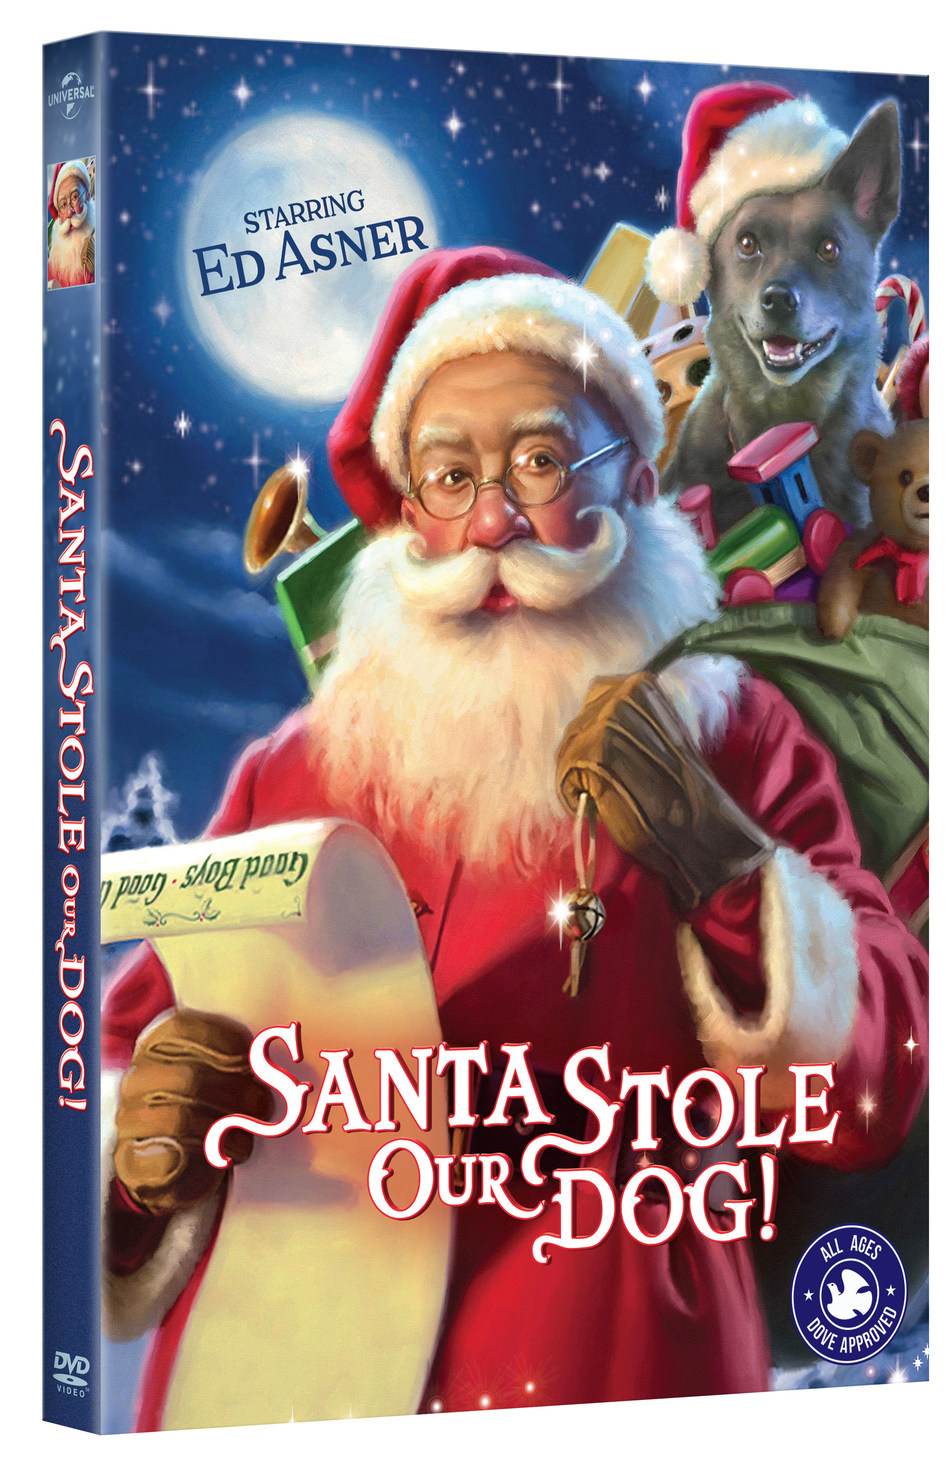 From Universal Pictures Home Entertainment: Santa Stole Our Dog